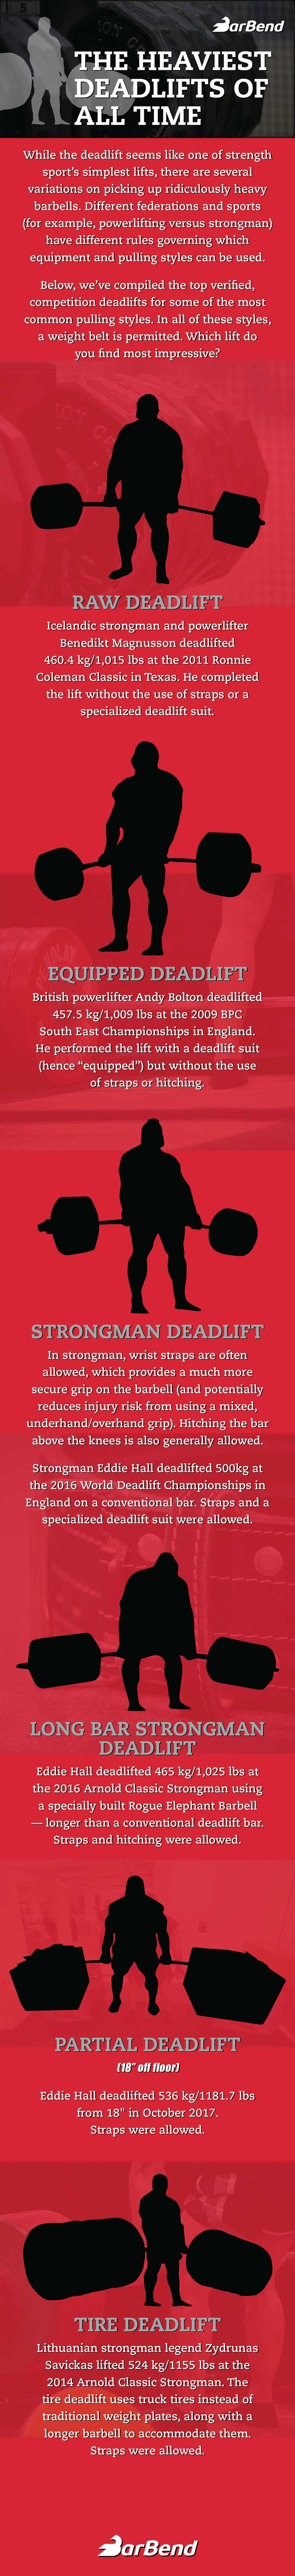 The Heaviest Deadlifts of All Time (Infographic) - BarBend